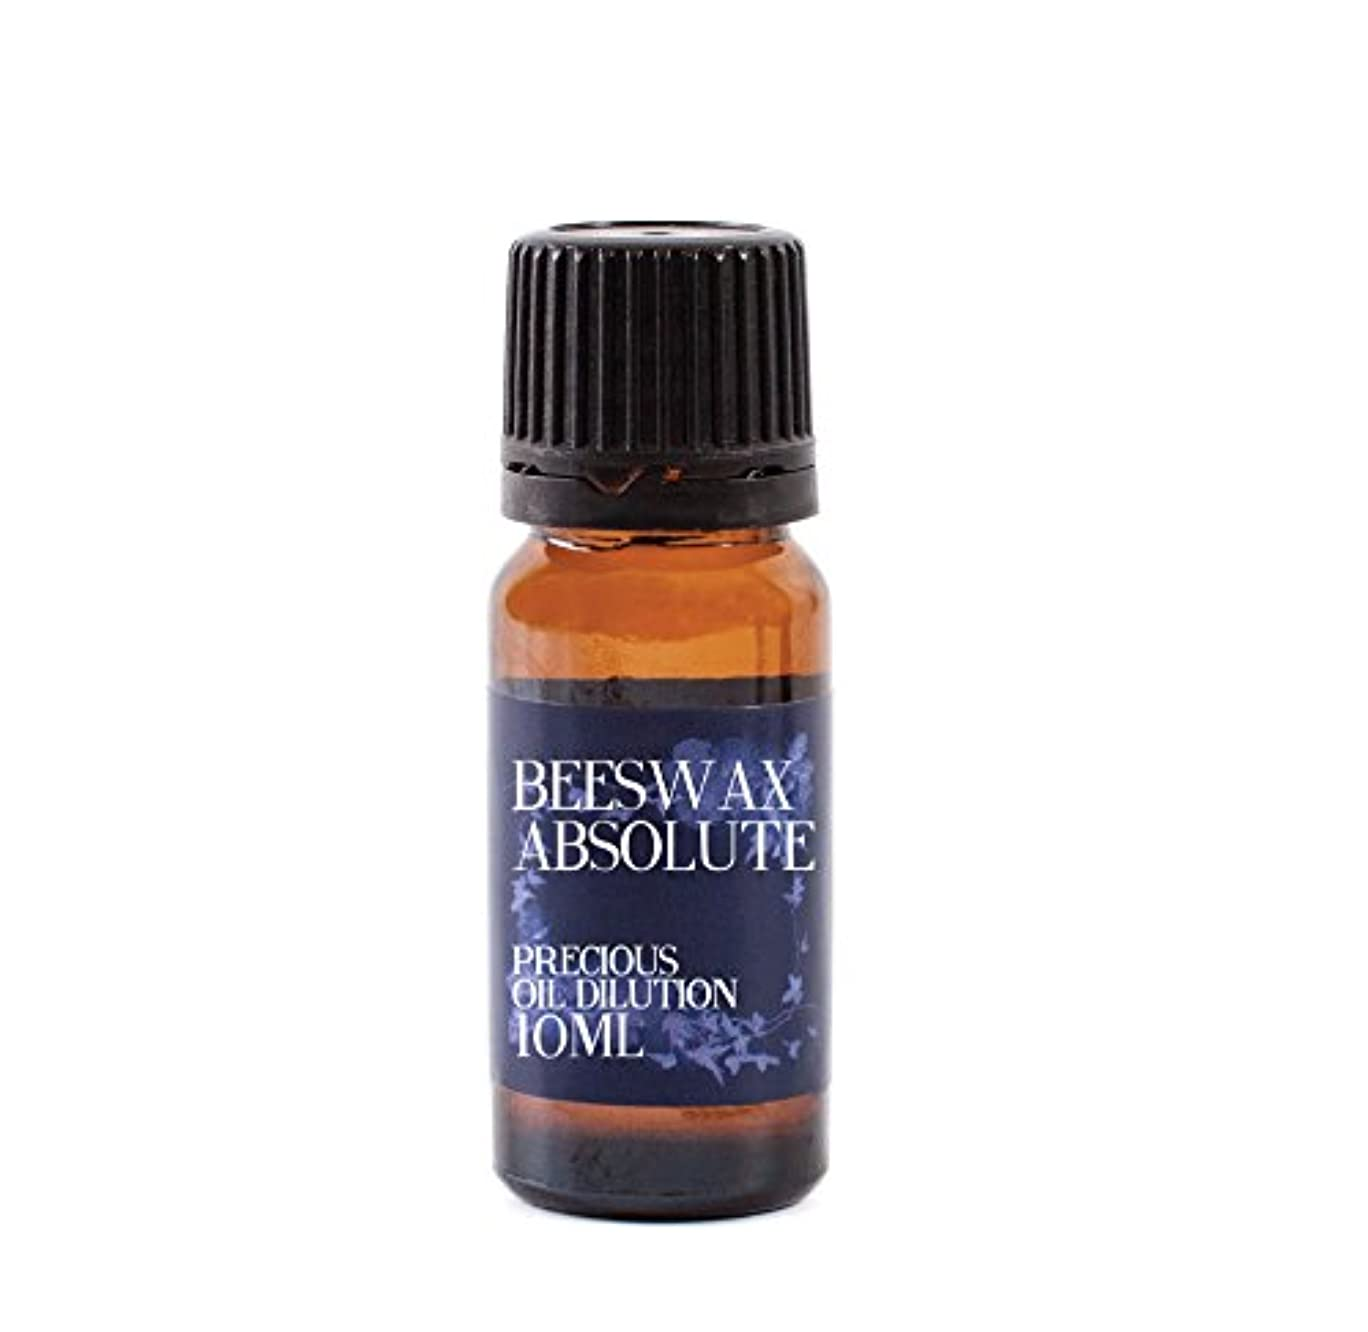 Beeswax Absolute Oil Dilution - 10ml